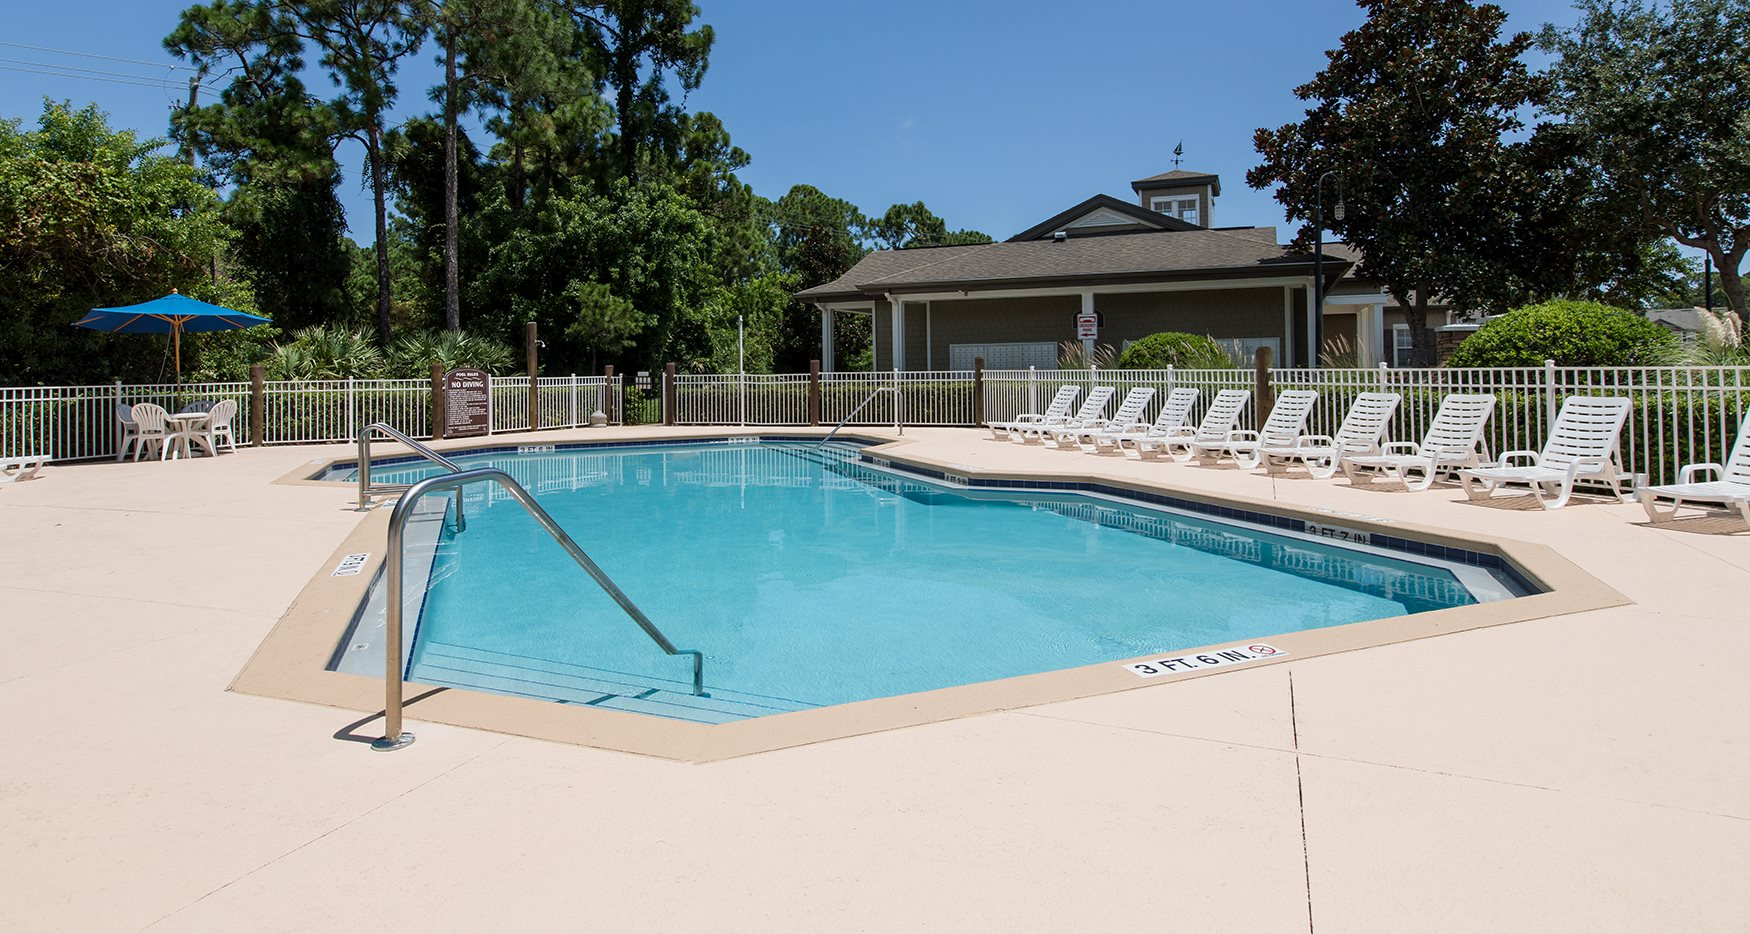 Stuart Pointe Apartments for rent in Jensen Beach, FL. Make this community your new home or visit other Concord Rents communities at ConcordRents.com. Pool